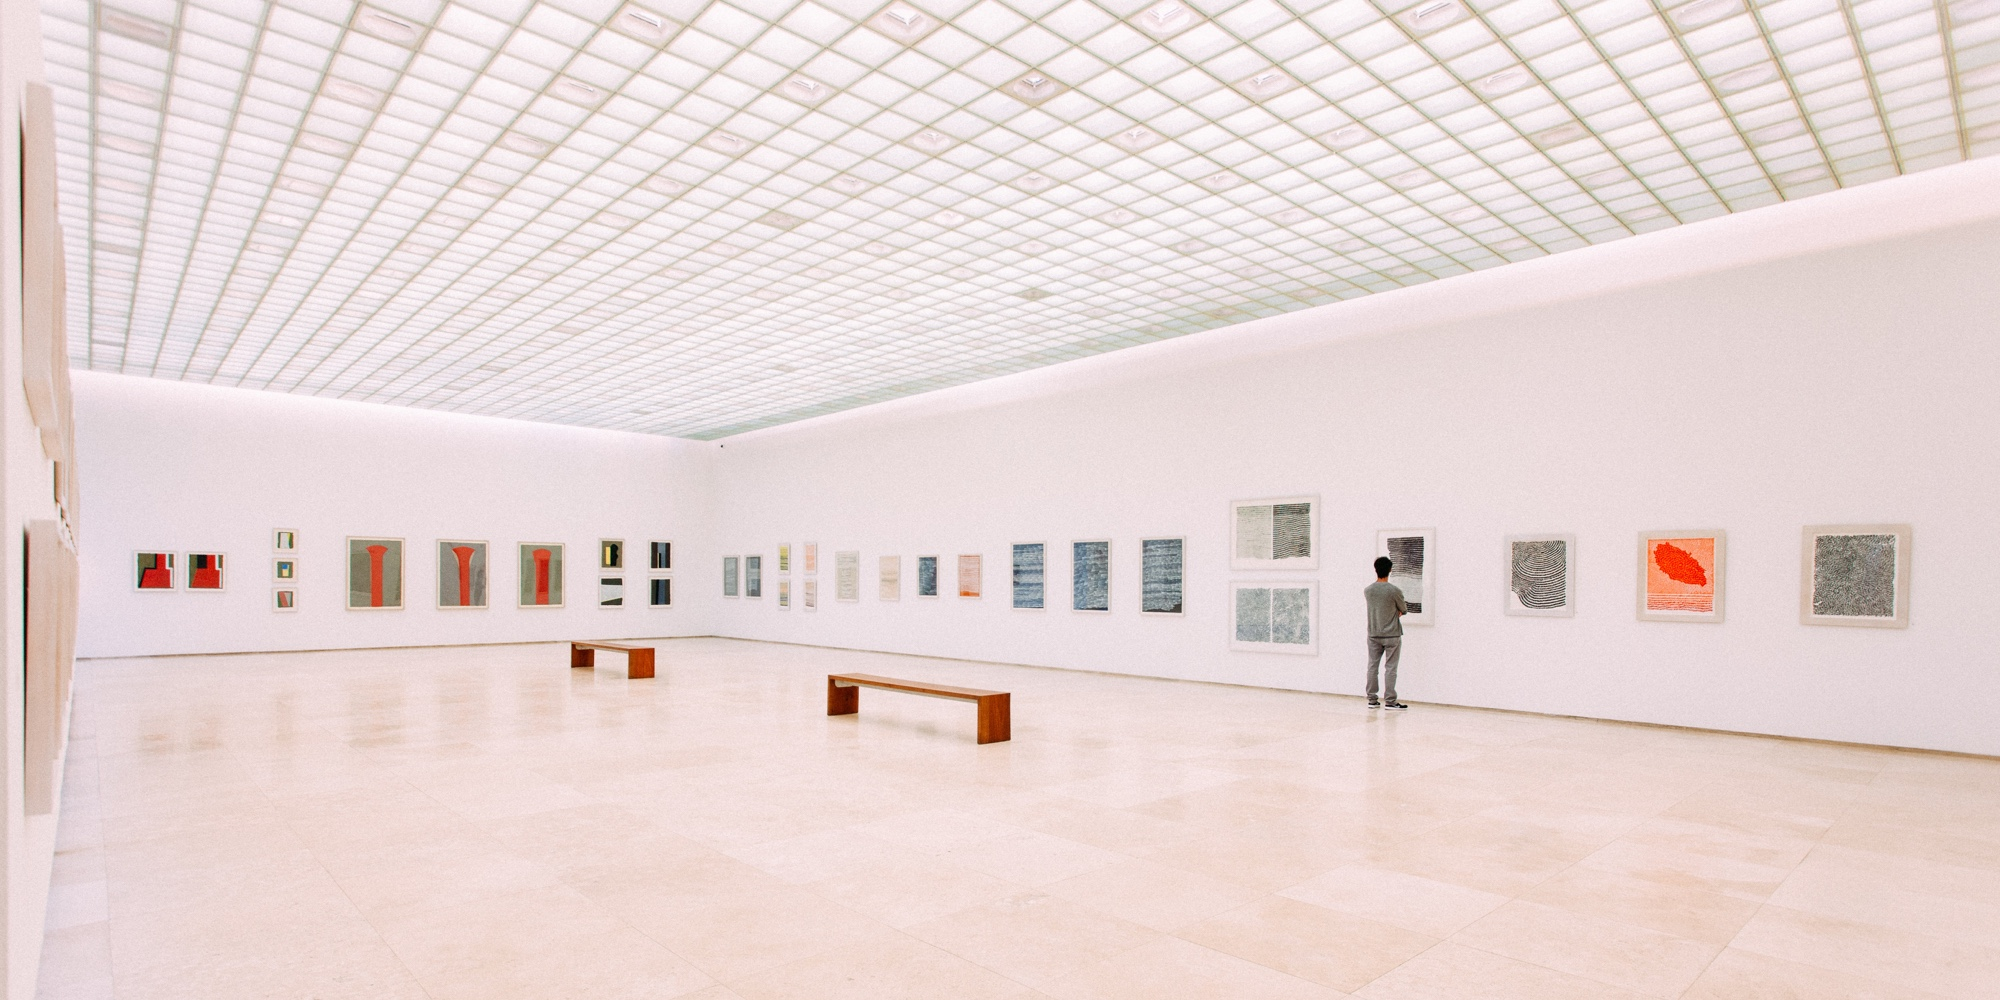 If your website is the exhibit, marketing is the museum